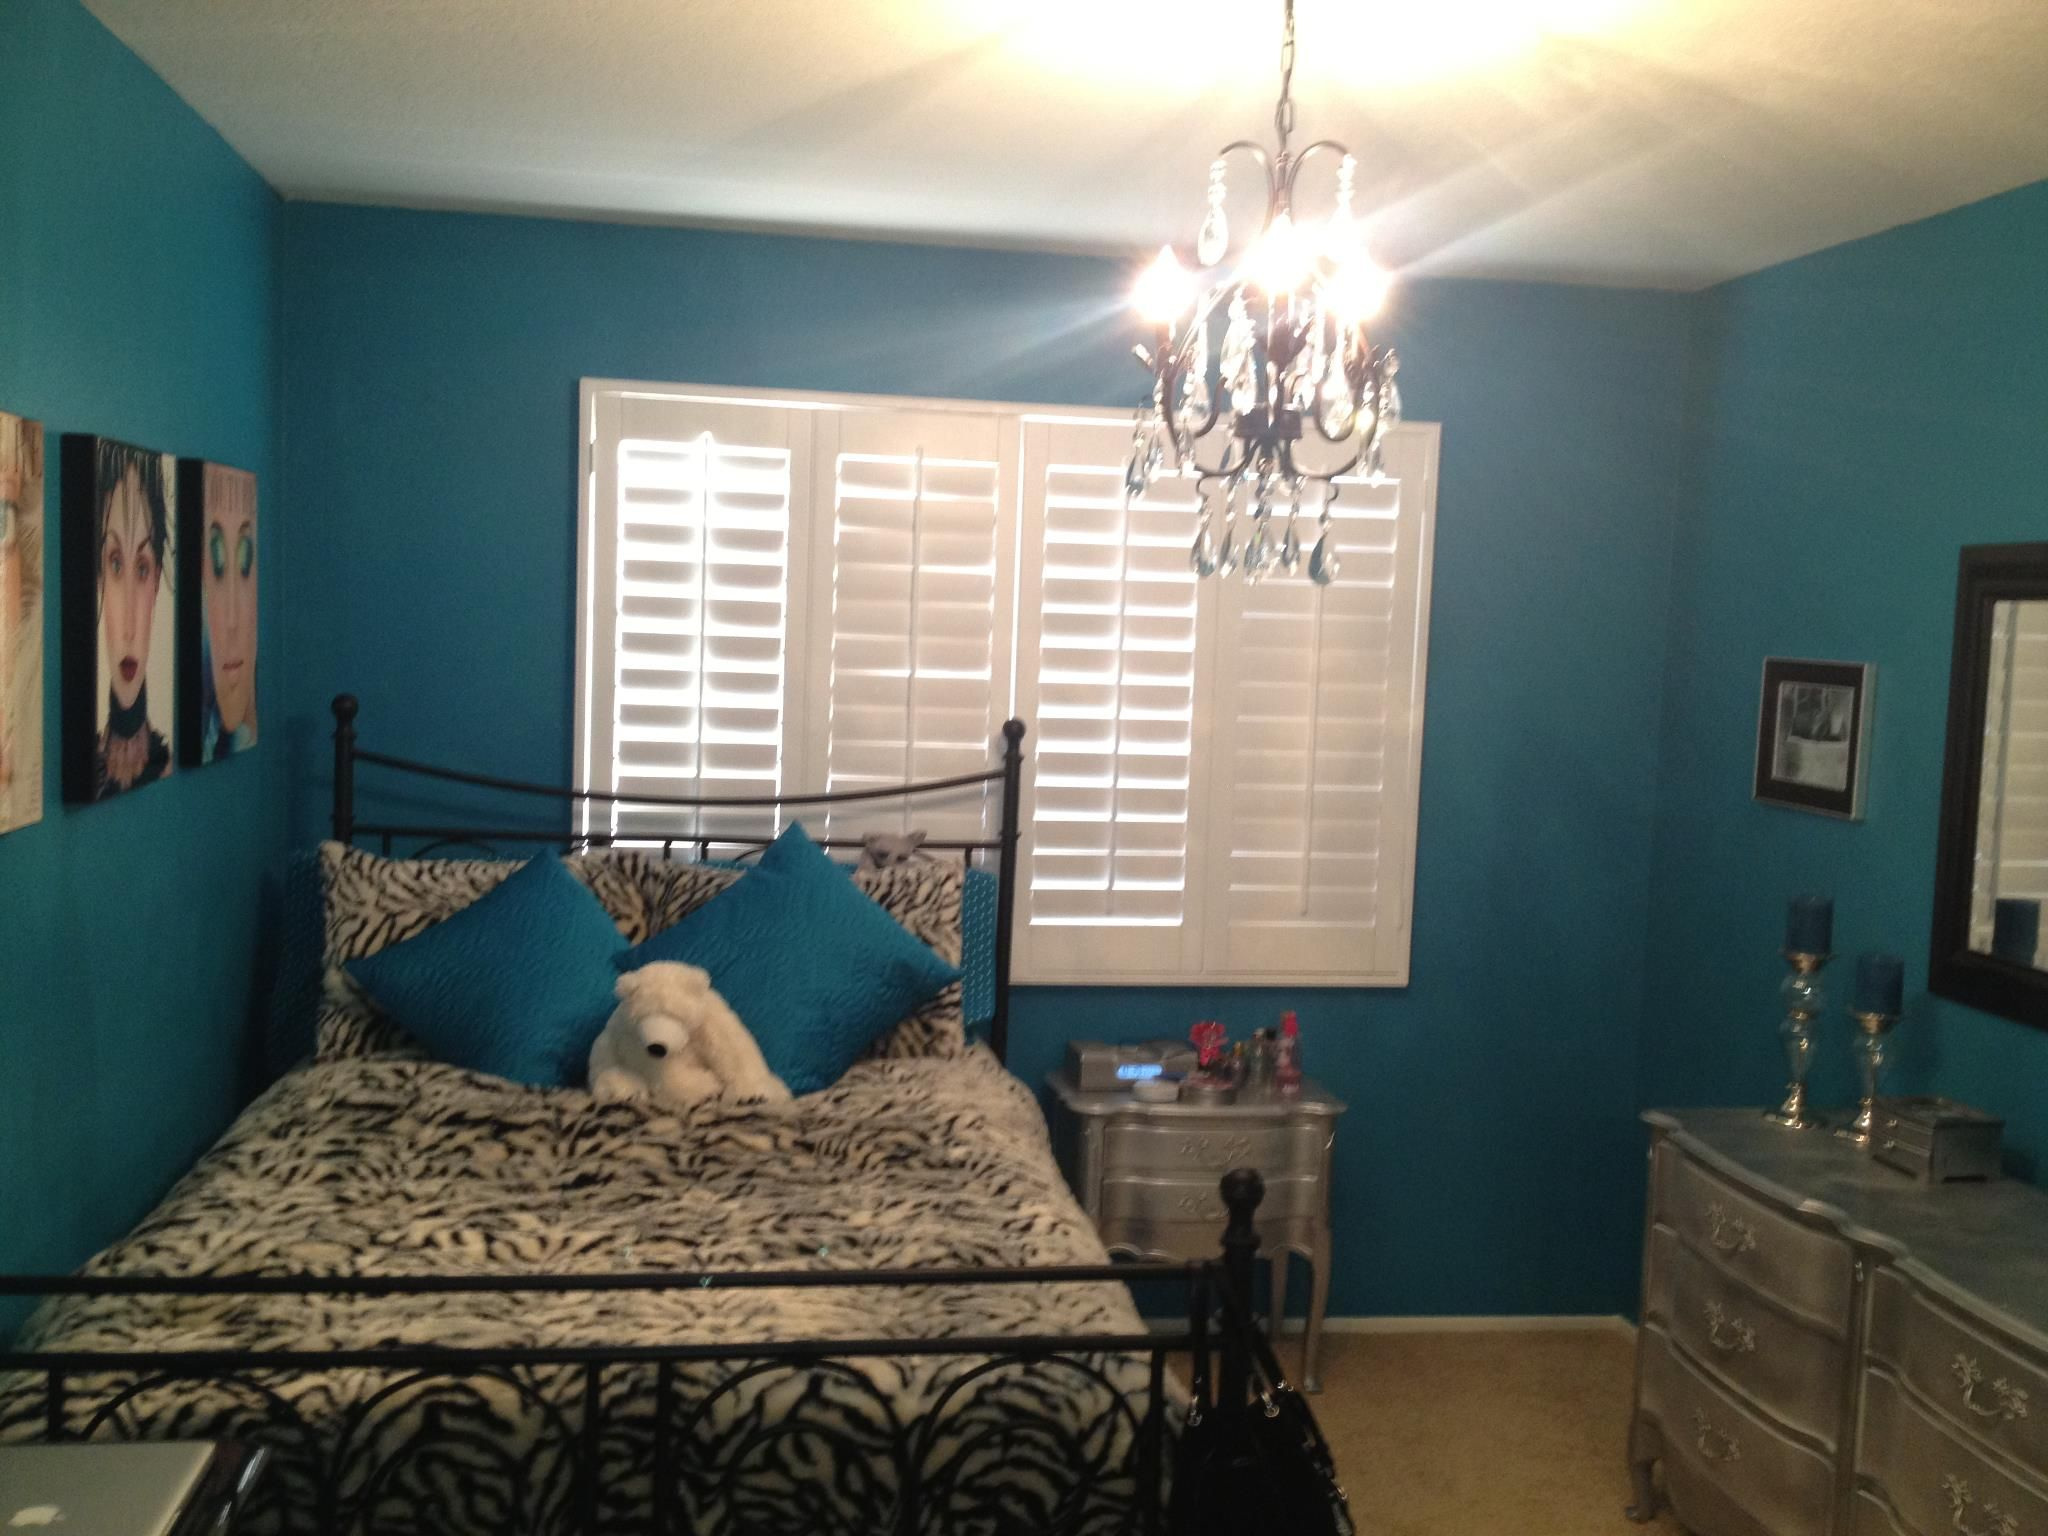 Beautiful Teal Wall Paint, Chandelier, Silver DIY Furniture Make A Maddy Girl Very  Happy